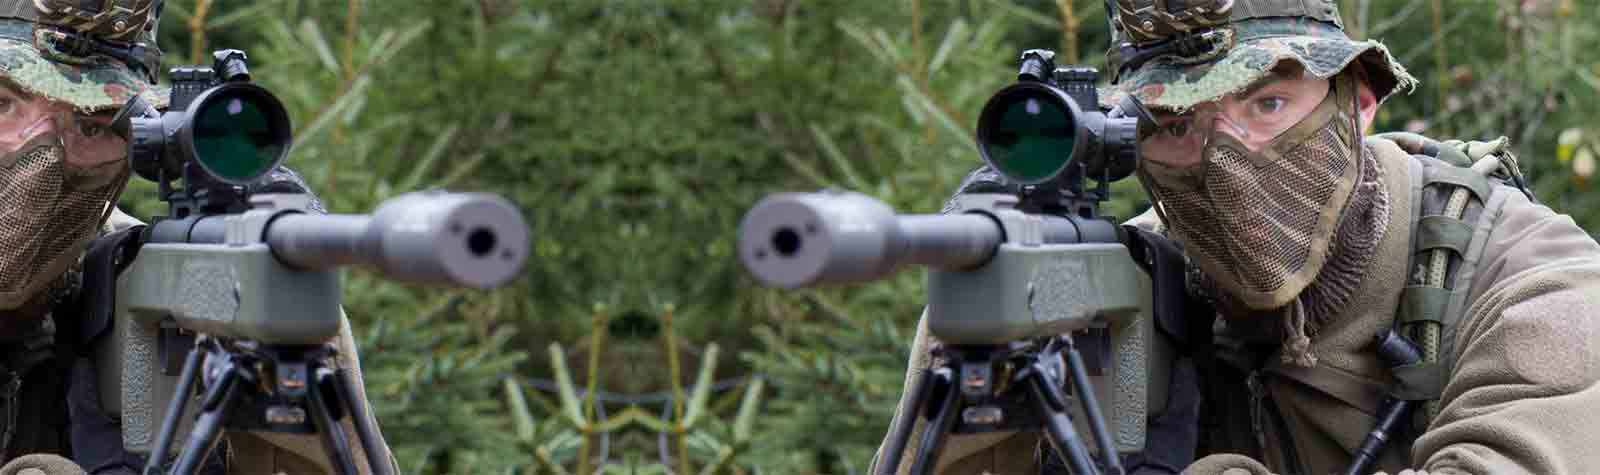 Are Airsoft Guns Safe? Thorough Information & Guideline